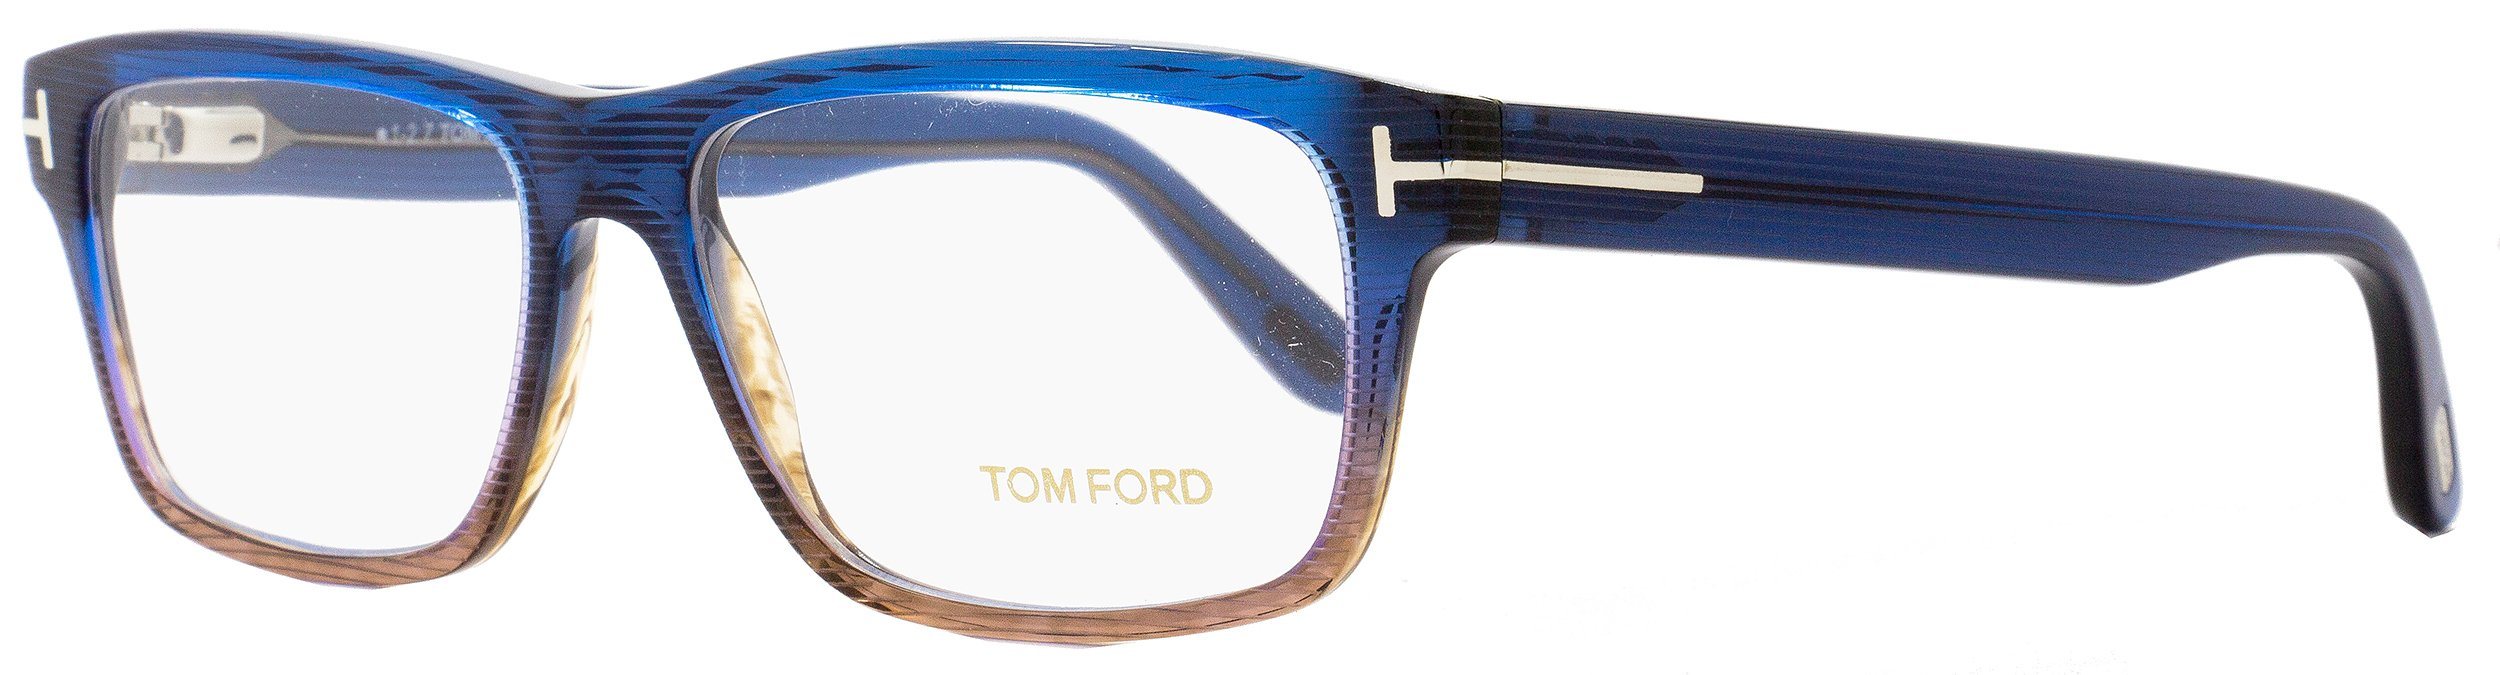 Eyeglasses Tom Ford TF 5320 FT5320 092 blue/other